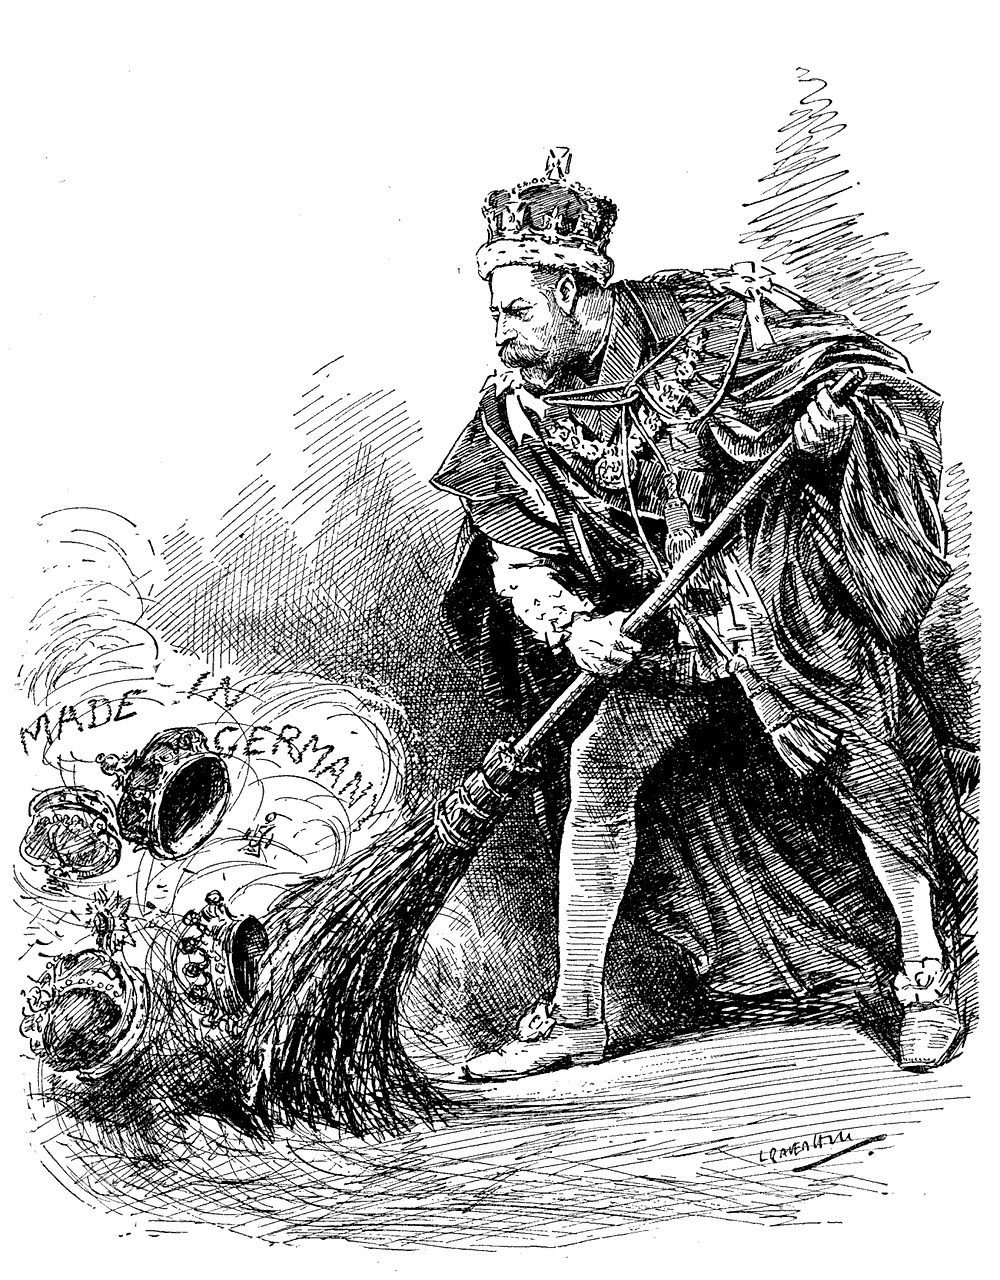 —a 1917 Punch cartoon depicts King George sweeping away his German titles. George changed the Royal name from House of Saxe-Coburg and Gotha to the Houseo of Windsor